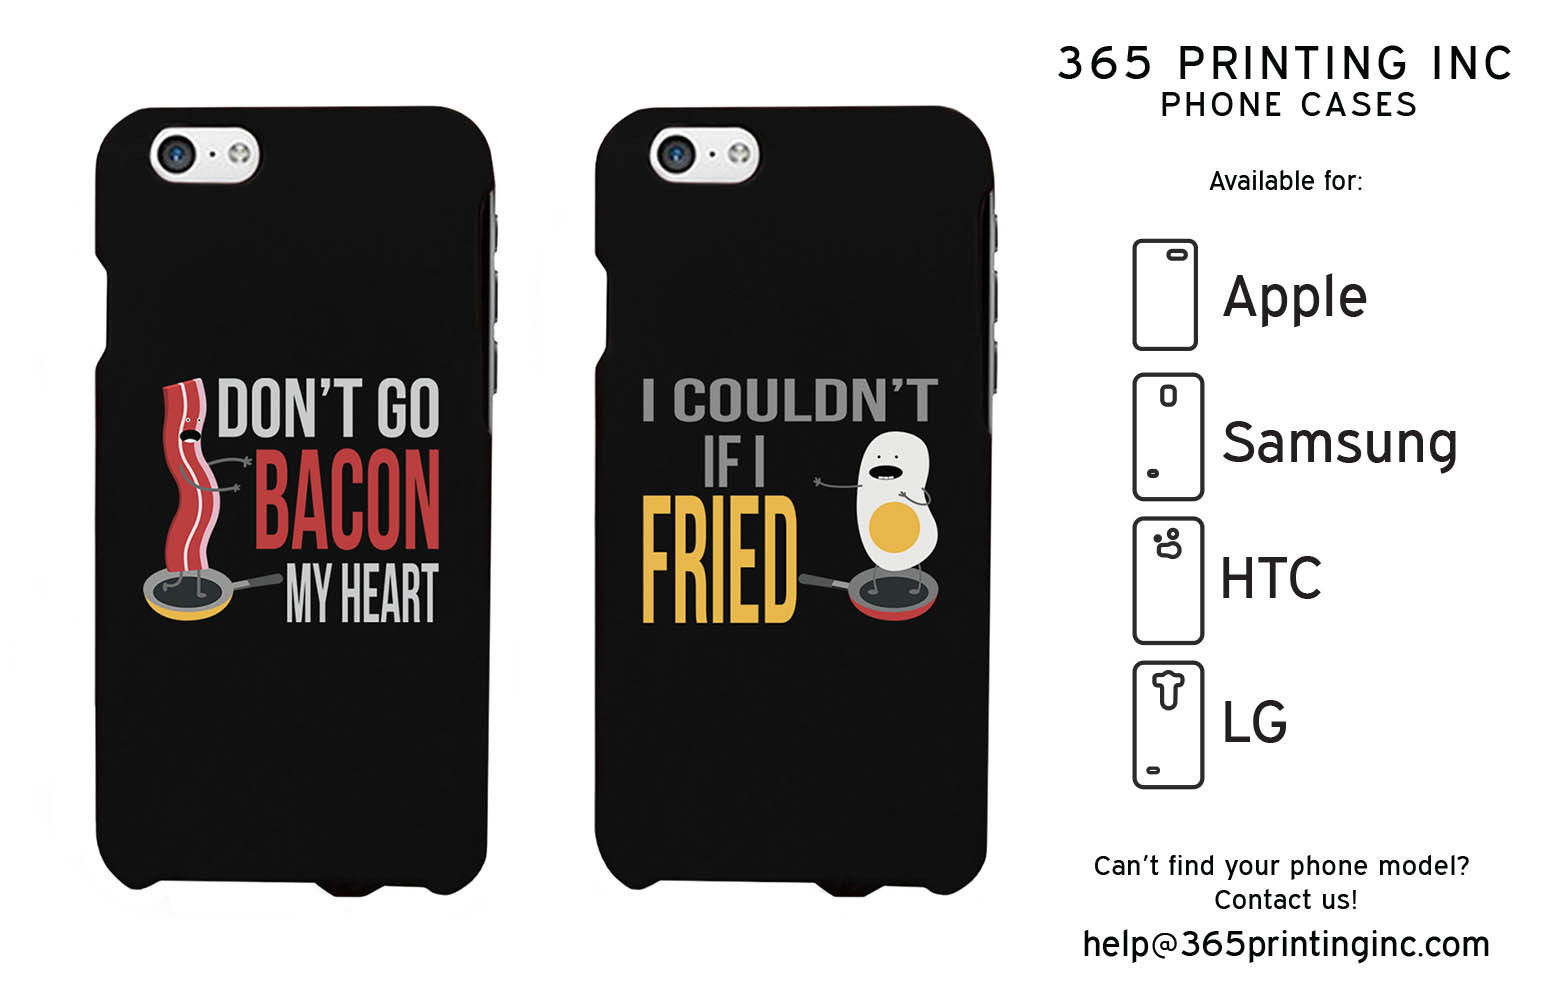 Bacon and Egg Phone Cases - iPhone 4-6+, Galaxy S3-S6 NOTE 4, HTC M8, LG G3